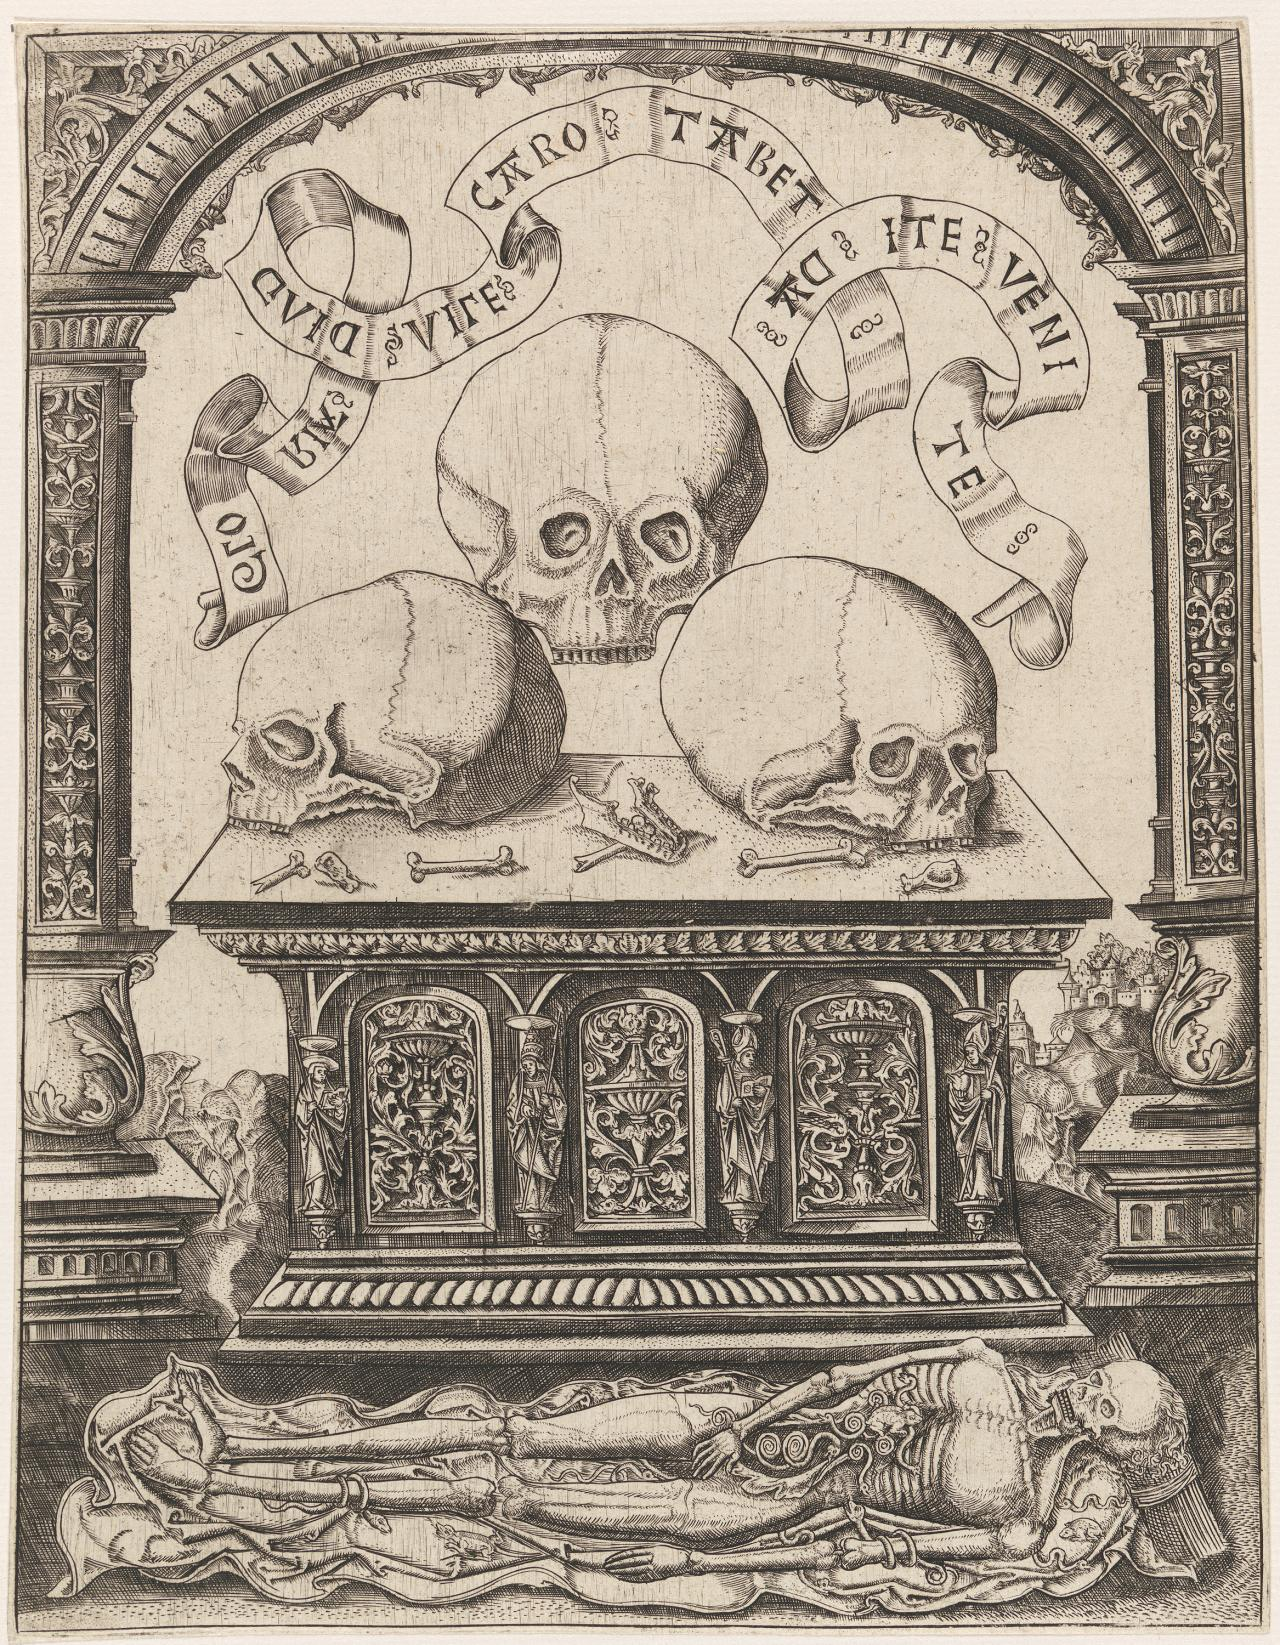 Three skulls on a carved tomb